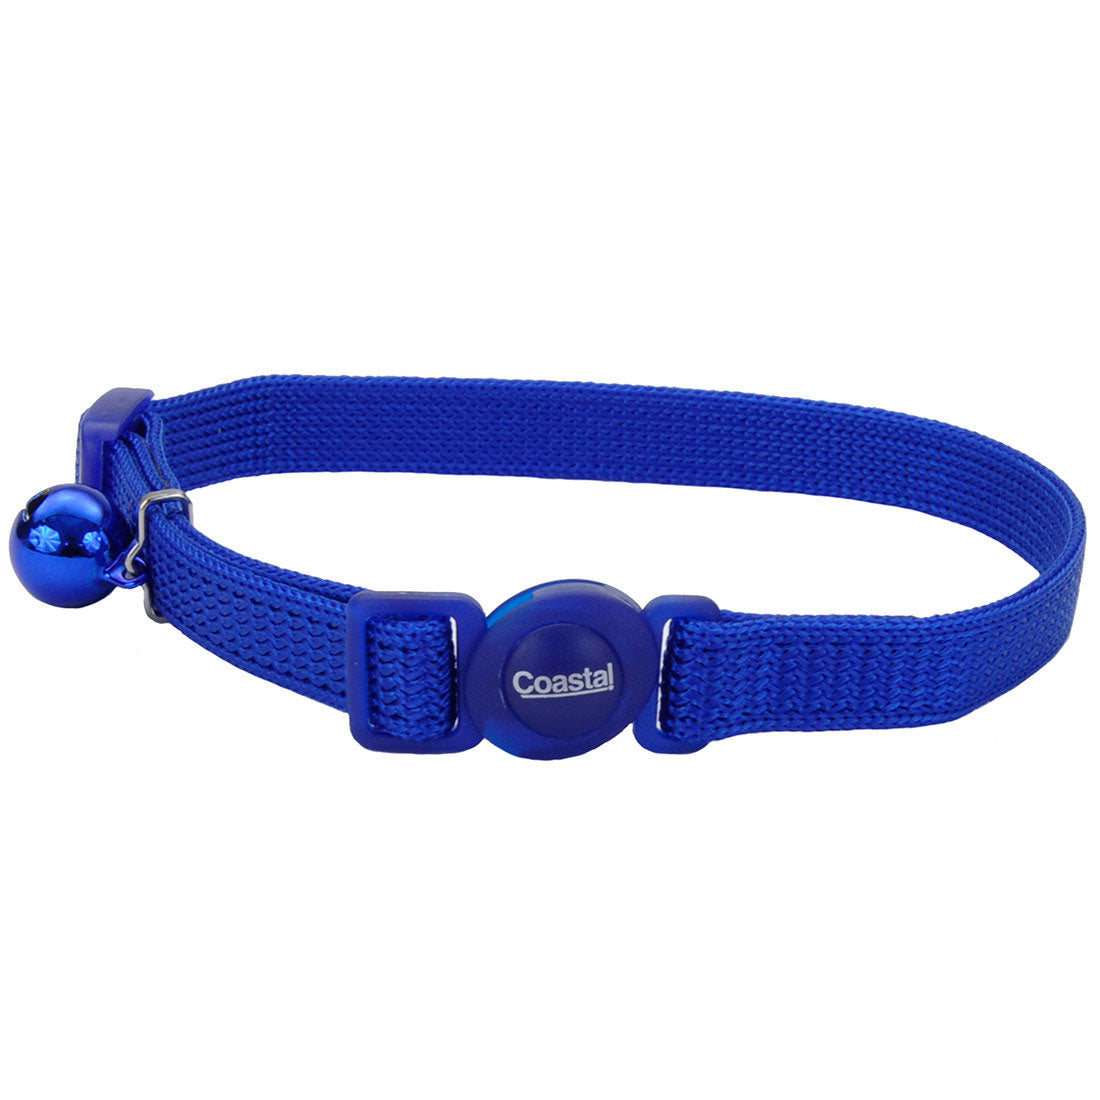 Coastal Pet Products Safe Cat® Adjustable Snag-Proof Breakaway Collar in Blue